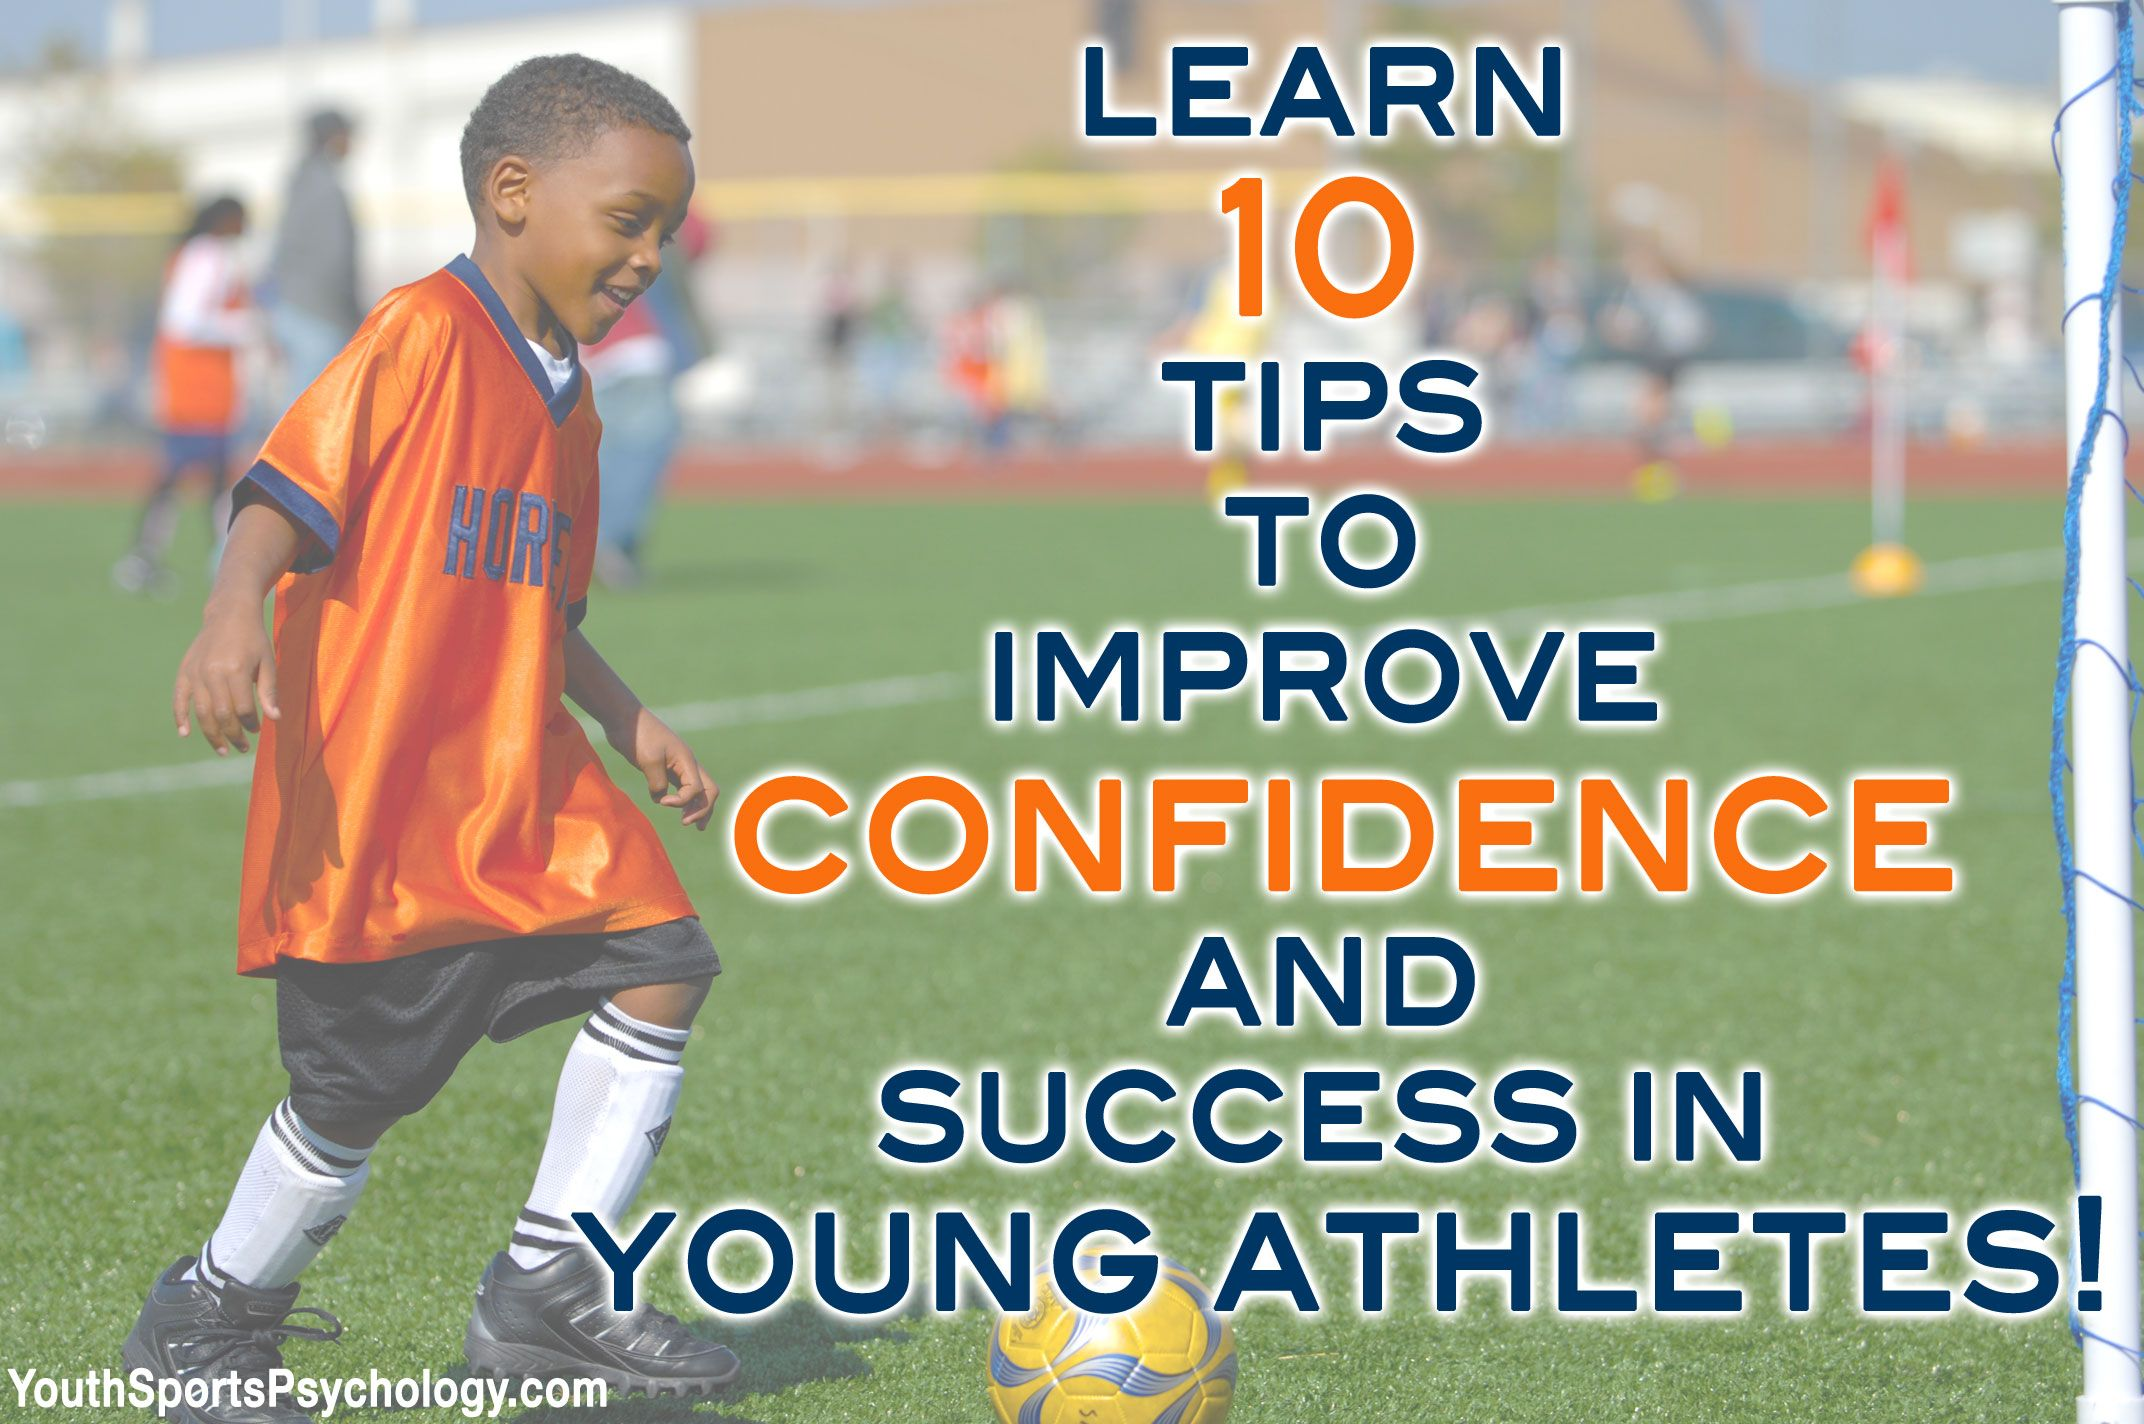 Sports Parents, learn the top 10 tips to improve your